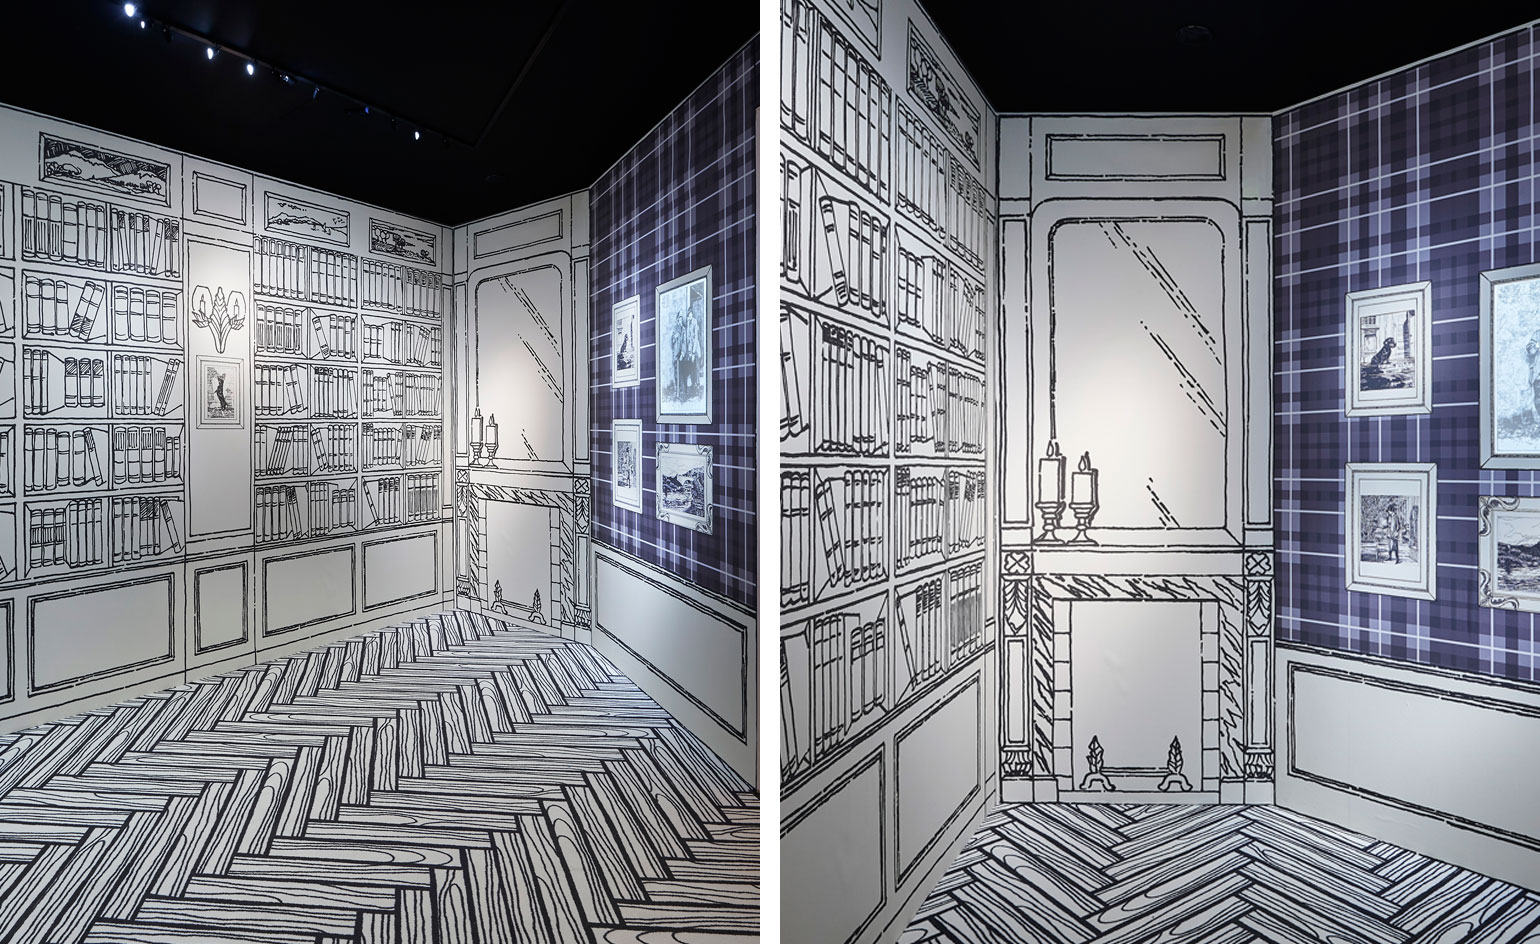 An illustrative impression of Chanel's first hat boutique in Deauville is followed by personal drawings of her travels to Scotland, England and Venice, which come to life when scanned by the exhibition's purpose-built app.